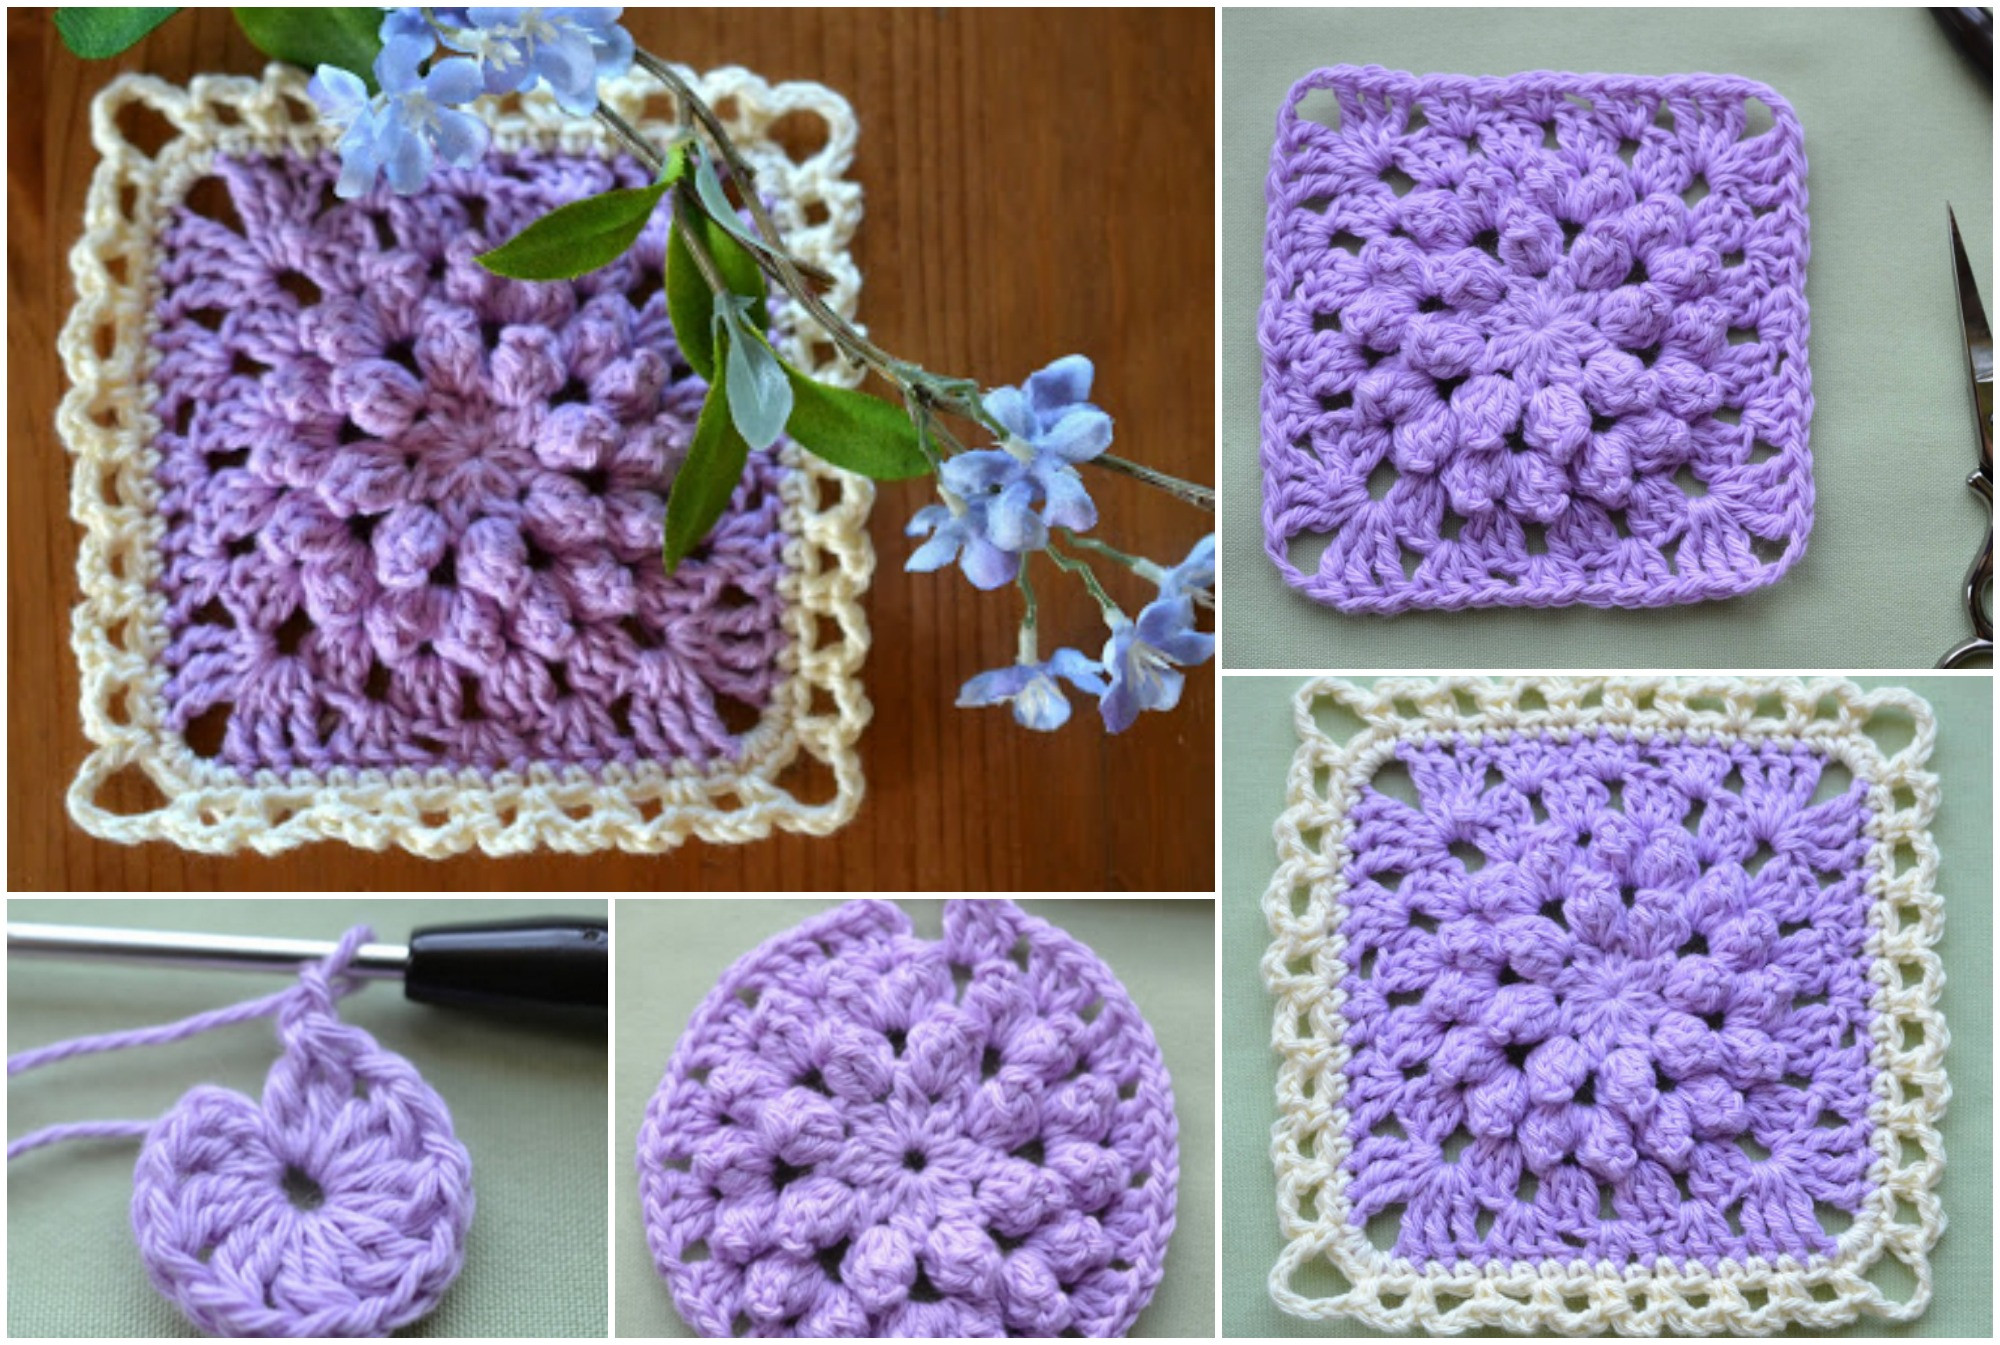 Unique Popcorn Stitch Granny Square – Crochet Ideas Popcorn Stitch Crochet Patterns Of Best Of How to Crochet Lazy Popcorn Stitch No Removing Your Hook Popcorn Stitch Crochet Patterns